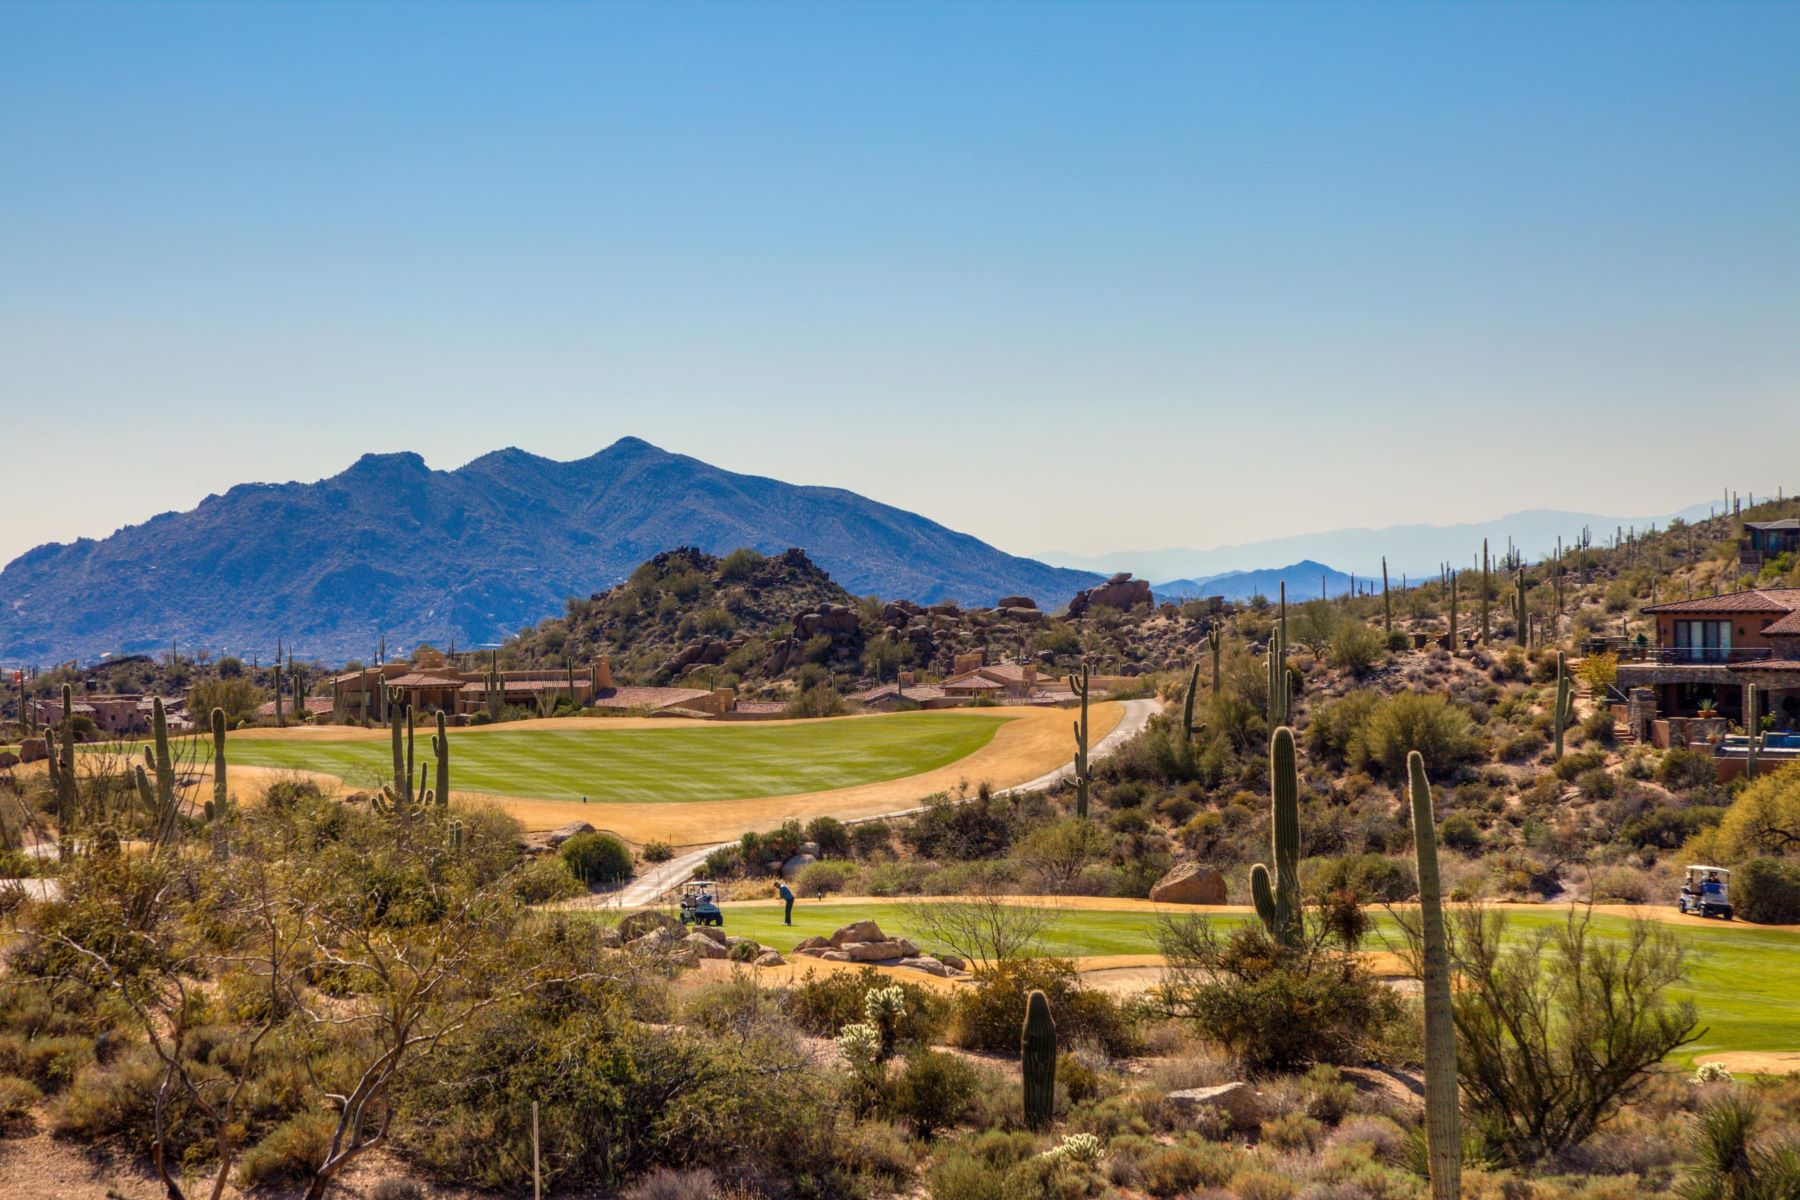 Land for Sale at Fabulous Desert Mountain Homesite 9621 E TEAR DROP CV LOT 130 Scottsdale, Arizona 85262 United States